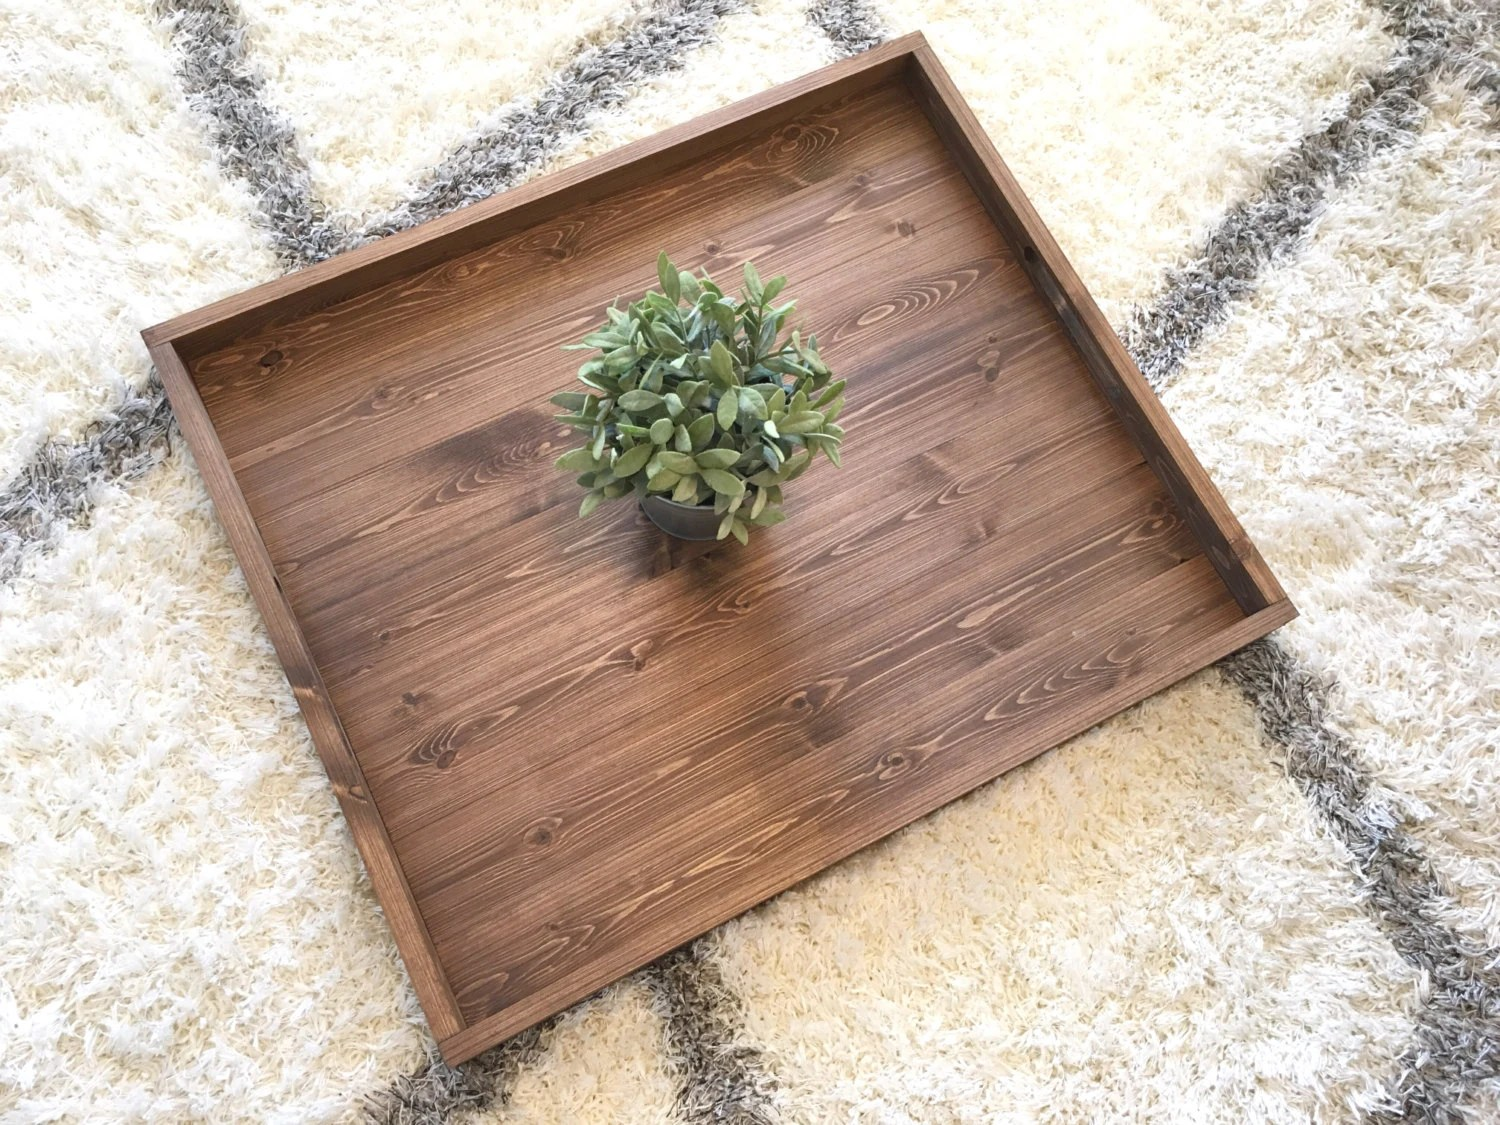 Farmhouse Coffee Table Etsy Rustic Wooden Ottoman Tray Ottoman Tray Wooden Tray Rustic